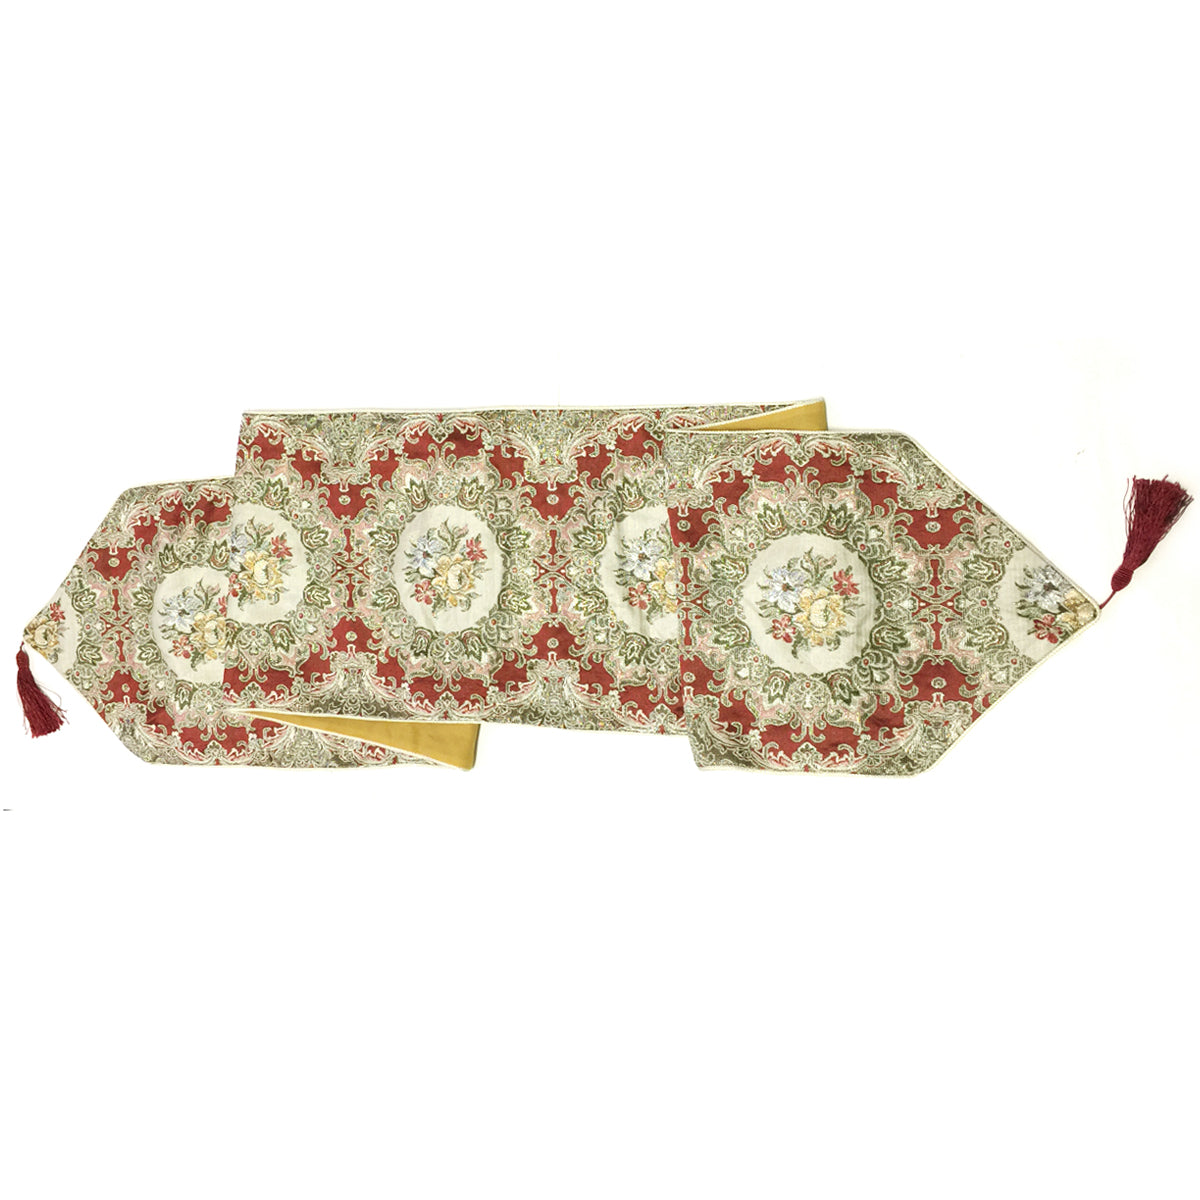 Wrapables 86 x 13.5 Inch Vintage Old World Table Runner with Gold Embroidery and Tassels, Imperial Gold